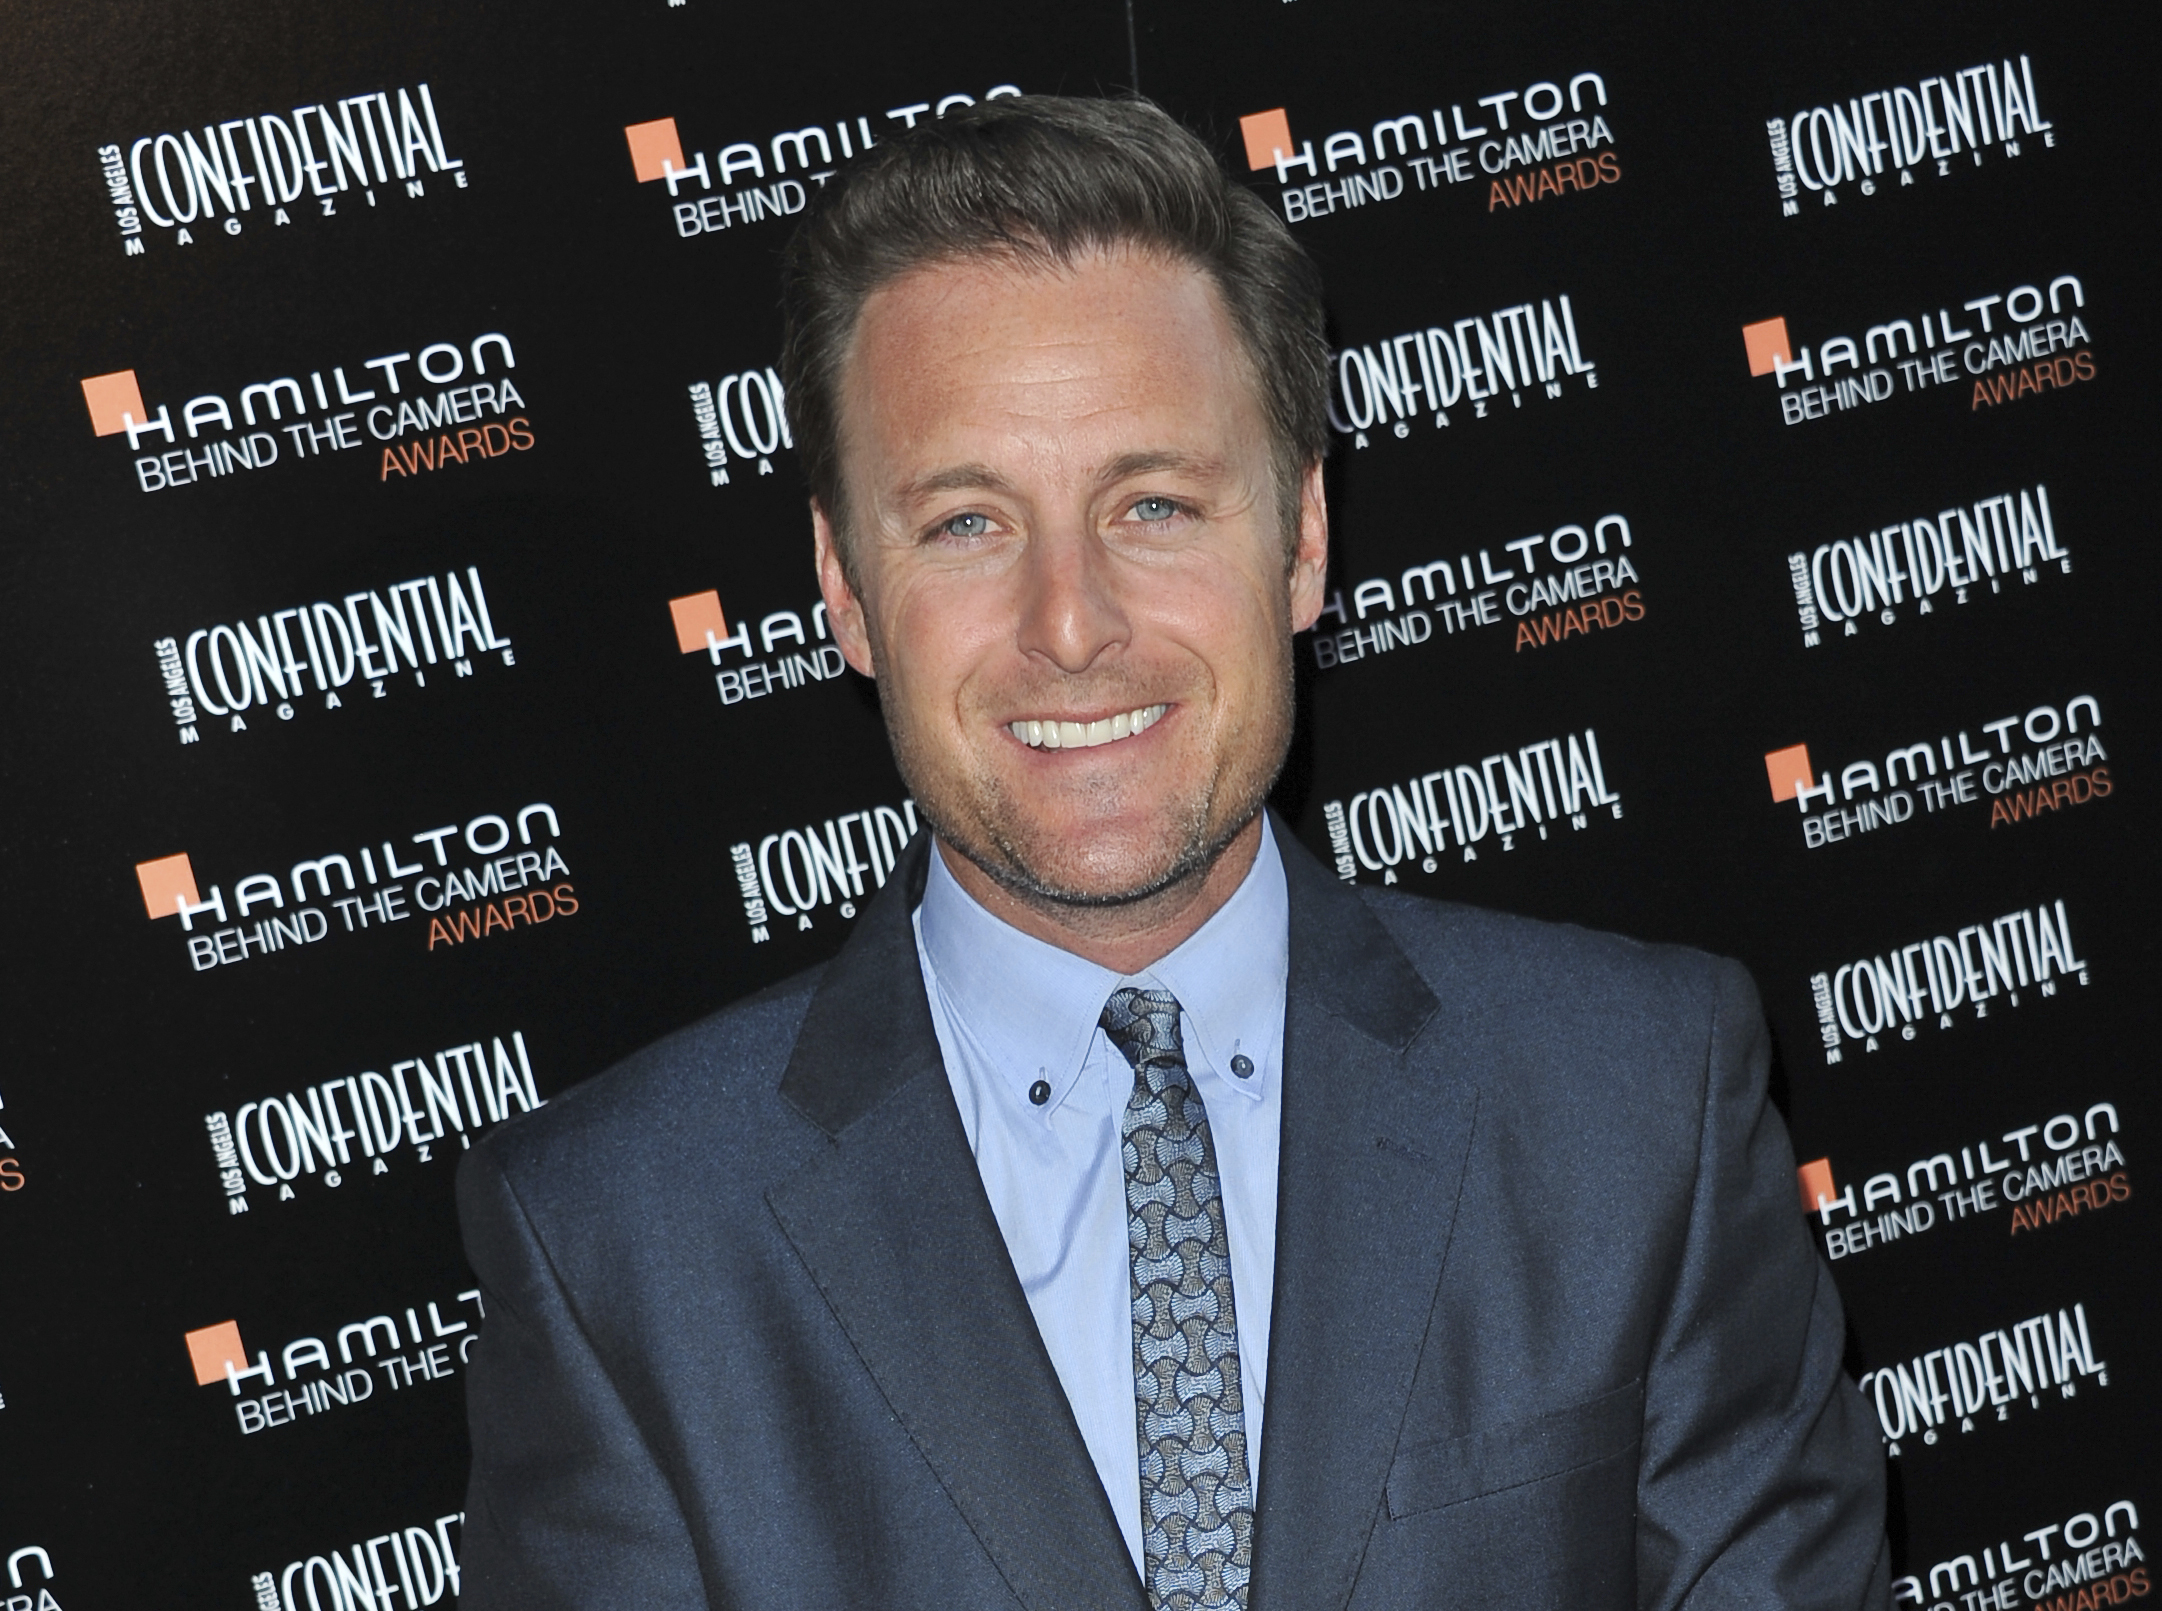 "FILE - This Oct. 28, 2012, file photo shows Chris Harrison at the Hamilton ""Behind the Camera"" Awards at the House of Blues West Hollywood, Calif. Harrison tells ABC News in a statement on June 13, 2017, that he's sorry for ""any inconvenience and disappointment"" for the cast, crew and fans of the ABC reality show after producers suspended production amid allegations of misconduct on set in Mexico. (Photo by Richard Shotwell/Invision/AP, File)"